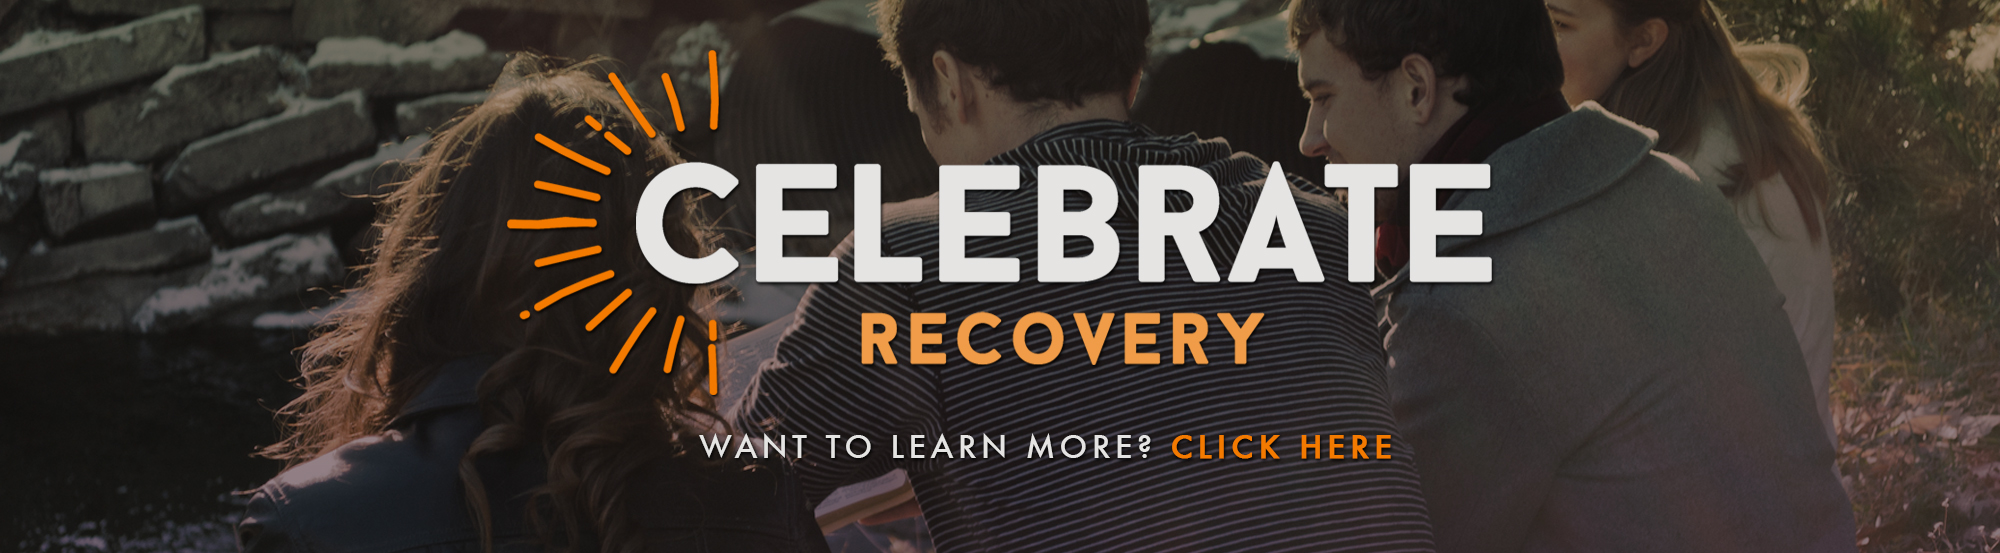 celebrate-recovery-main